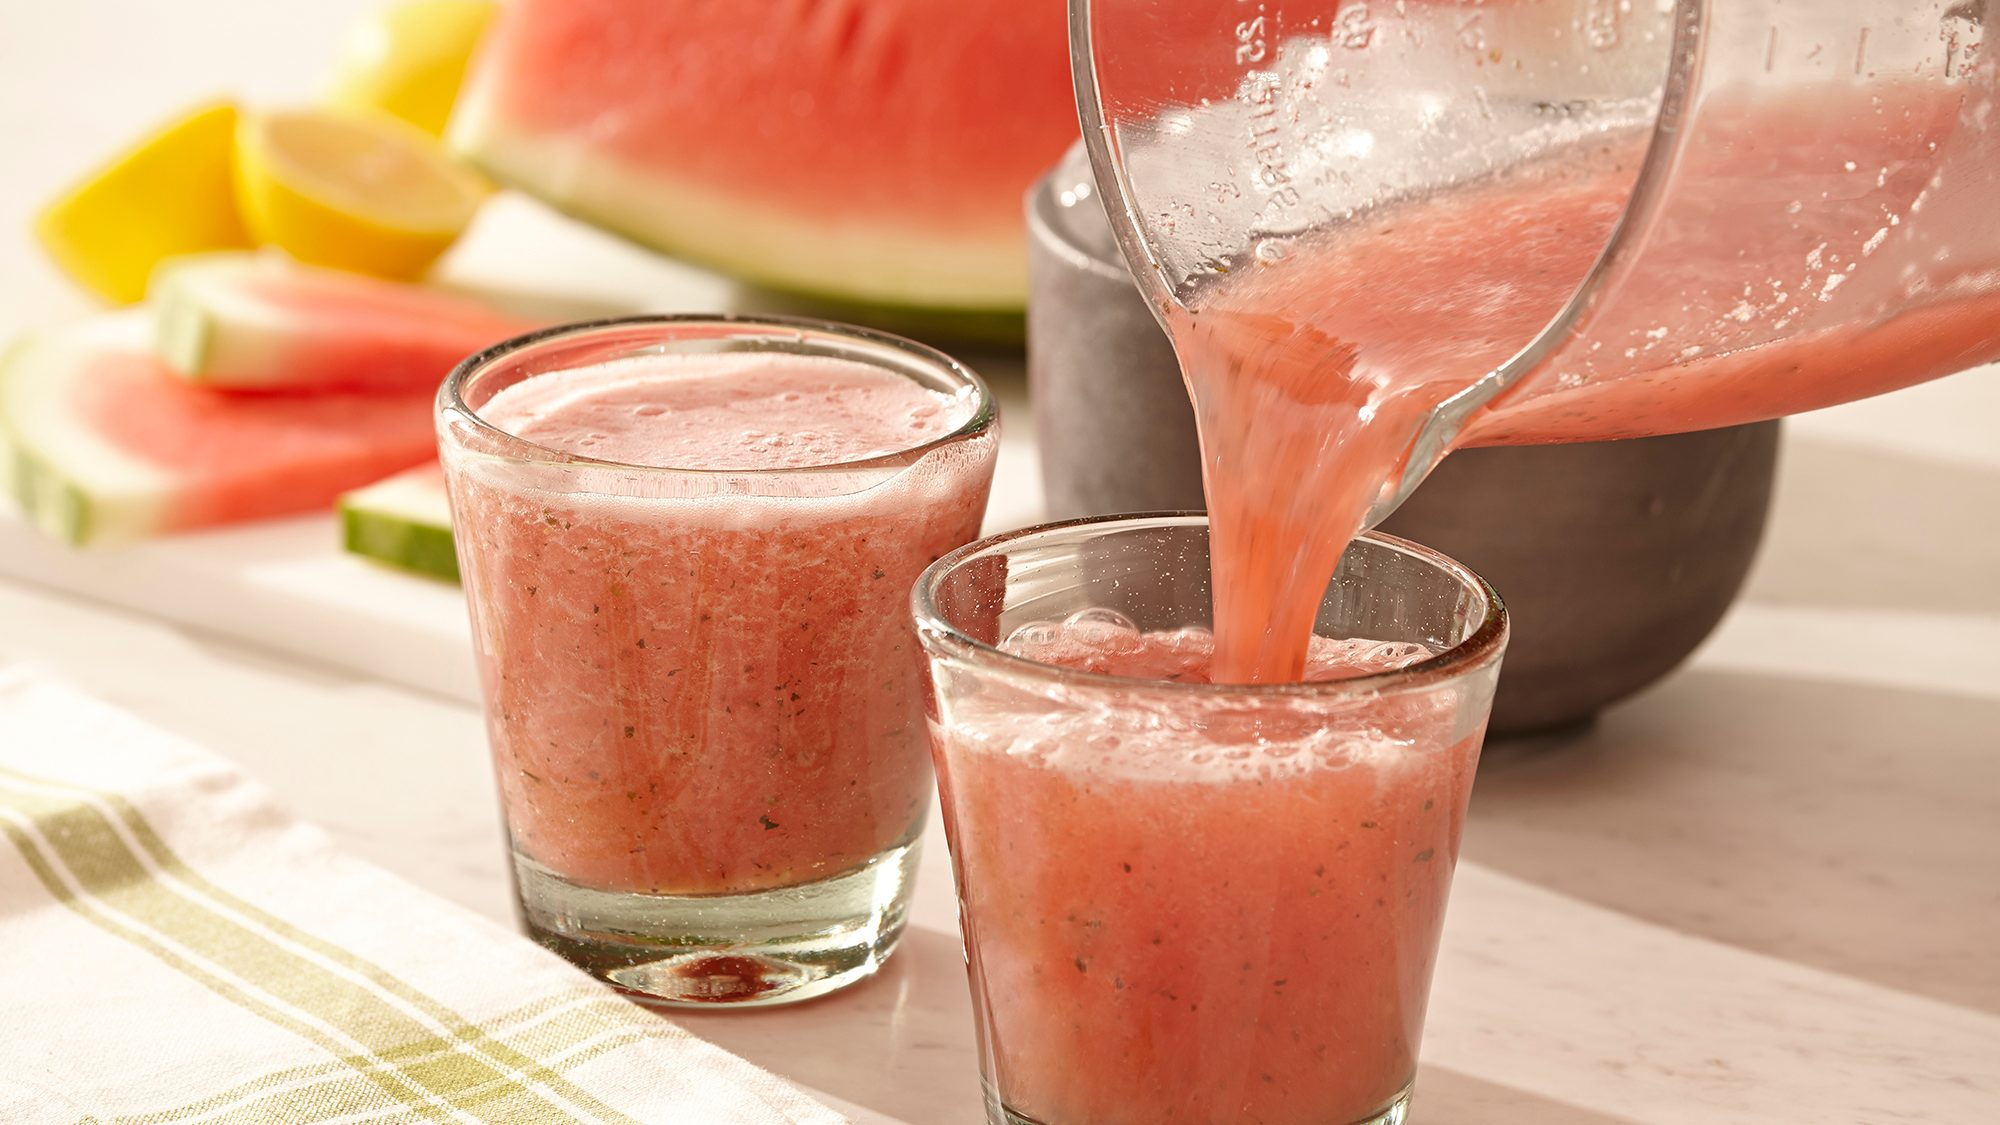 McCormick Basil and Watermelon Slushie